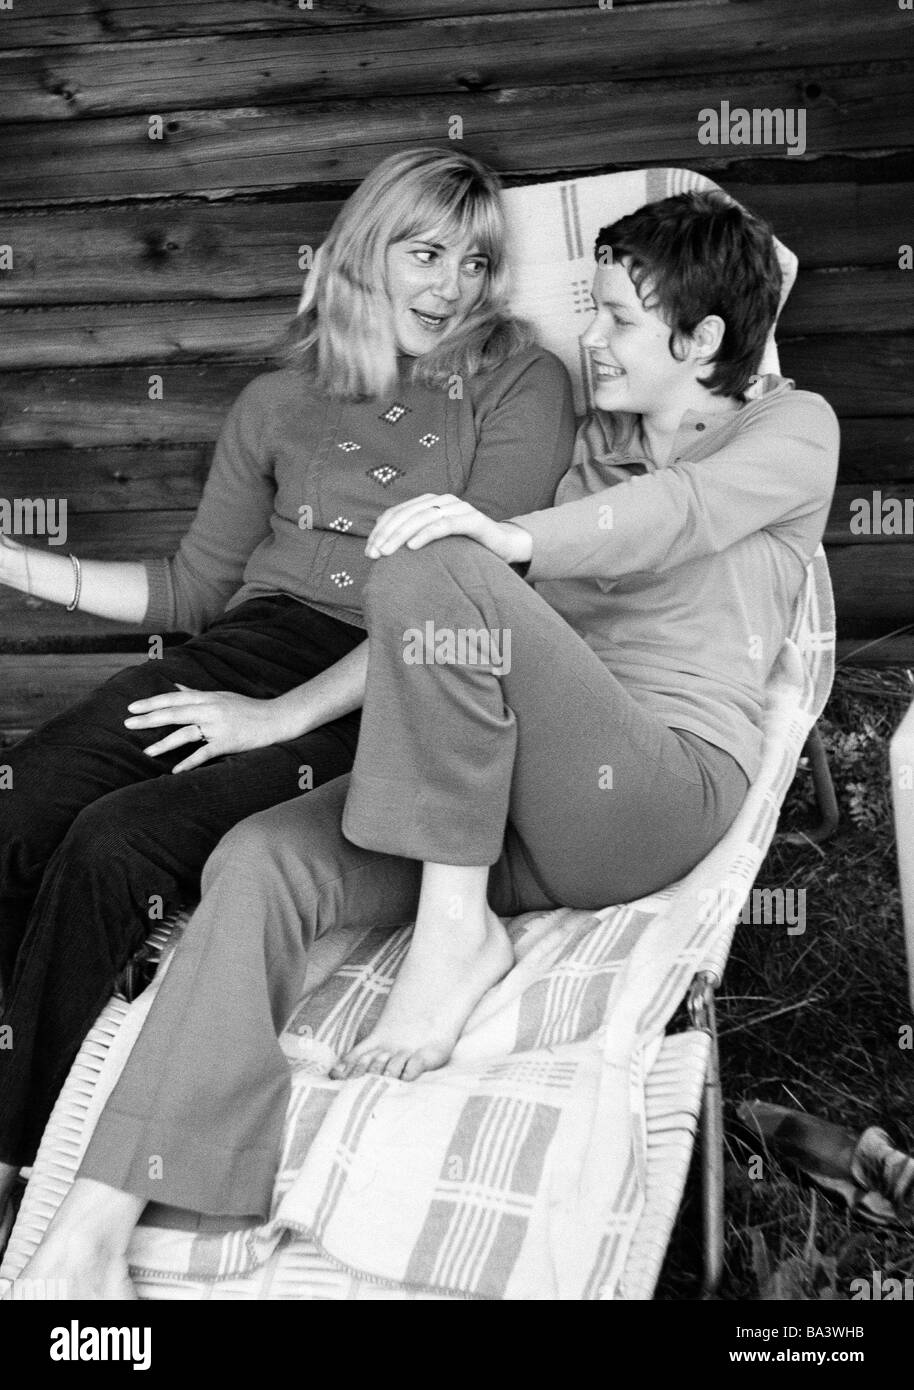 Seventies, black and white photo, people, two young girls sitting side by side, talking, pullover, trousers, aged - Stock Image